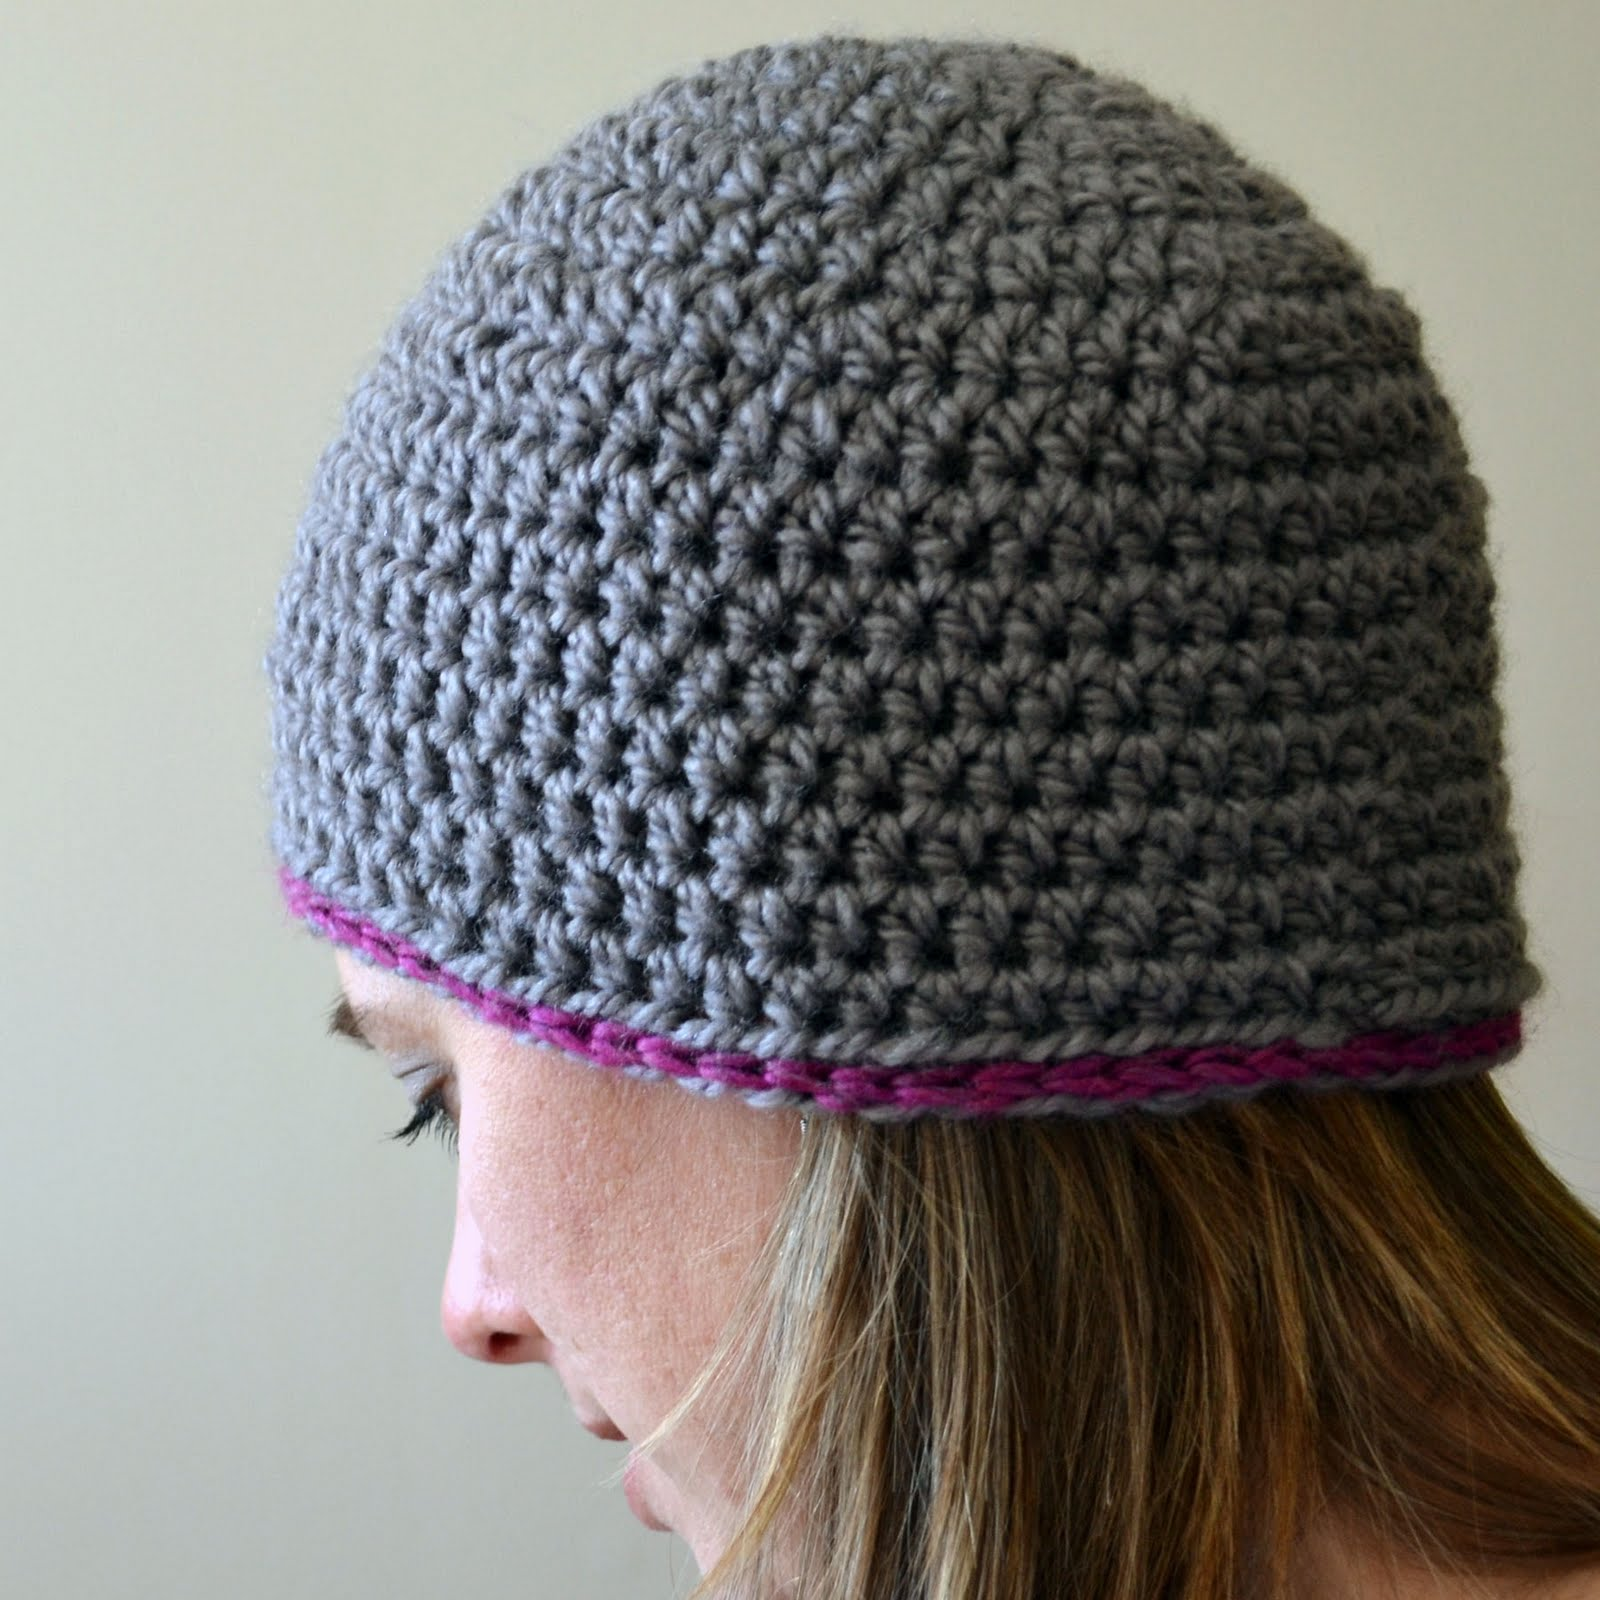 Free Crochet Pattern For Ladies Beanie Hat : Crochet in Color: Chunky Beanie Pattern